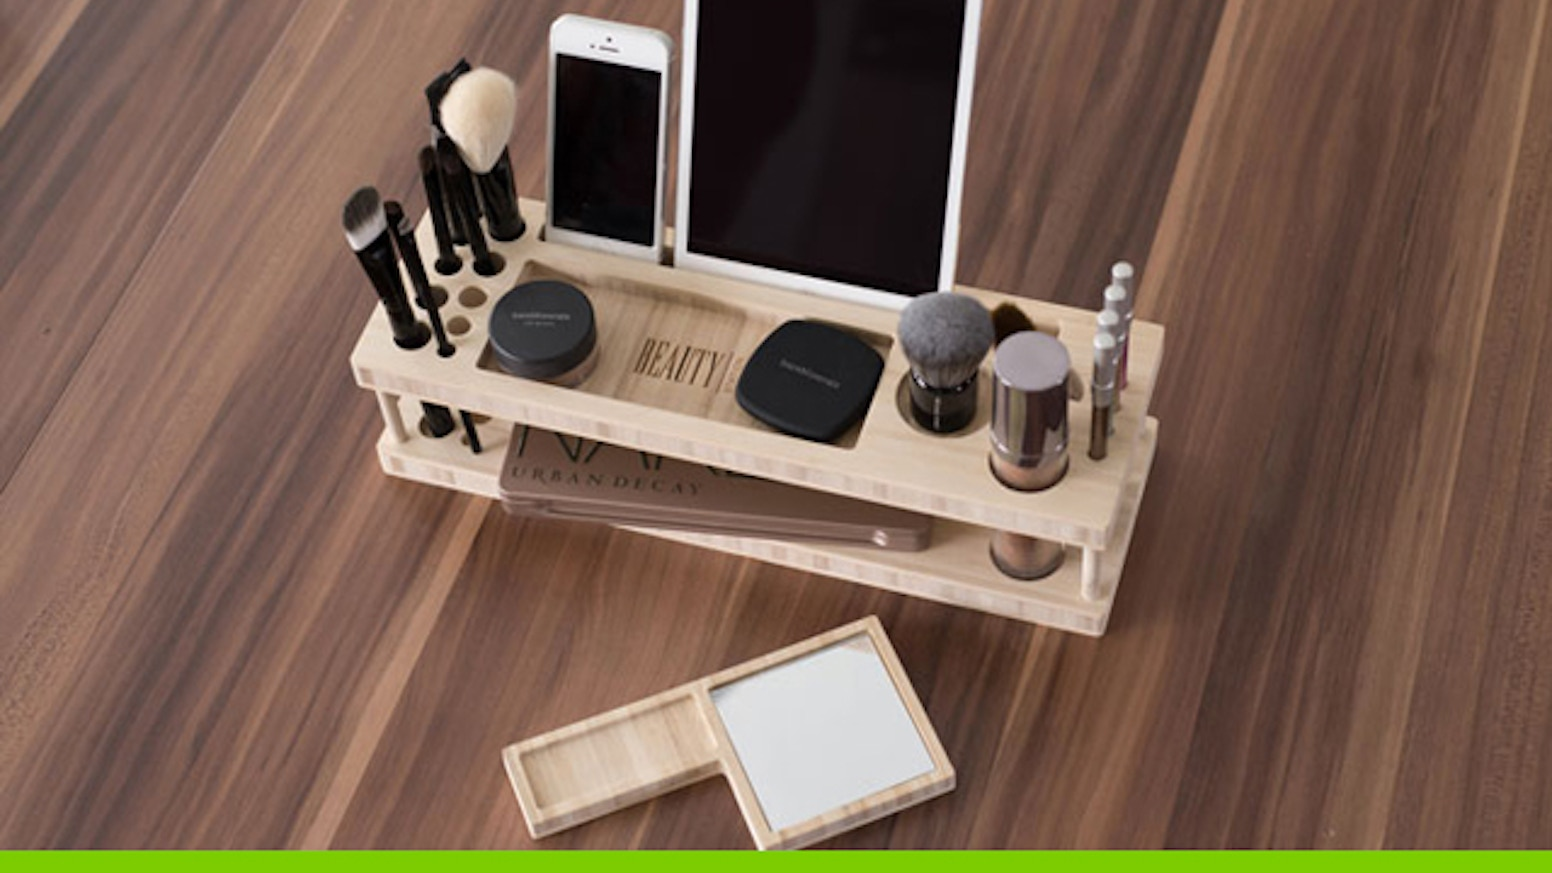 A complete makeup organizer, display center, and universal docking station for iPhone, iPad & most phones & tablets - Made in the USA.